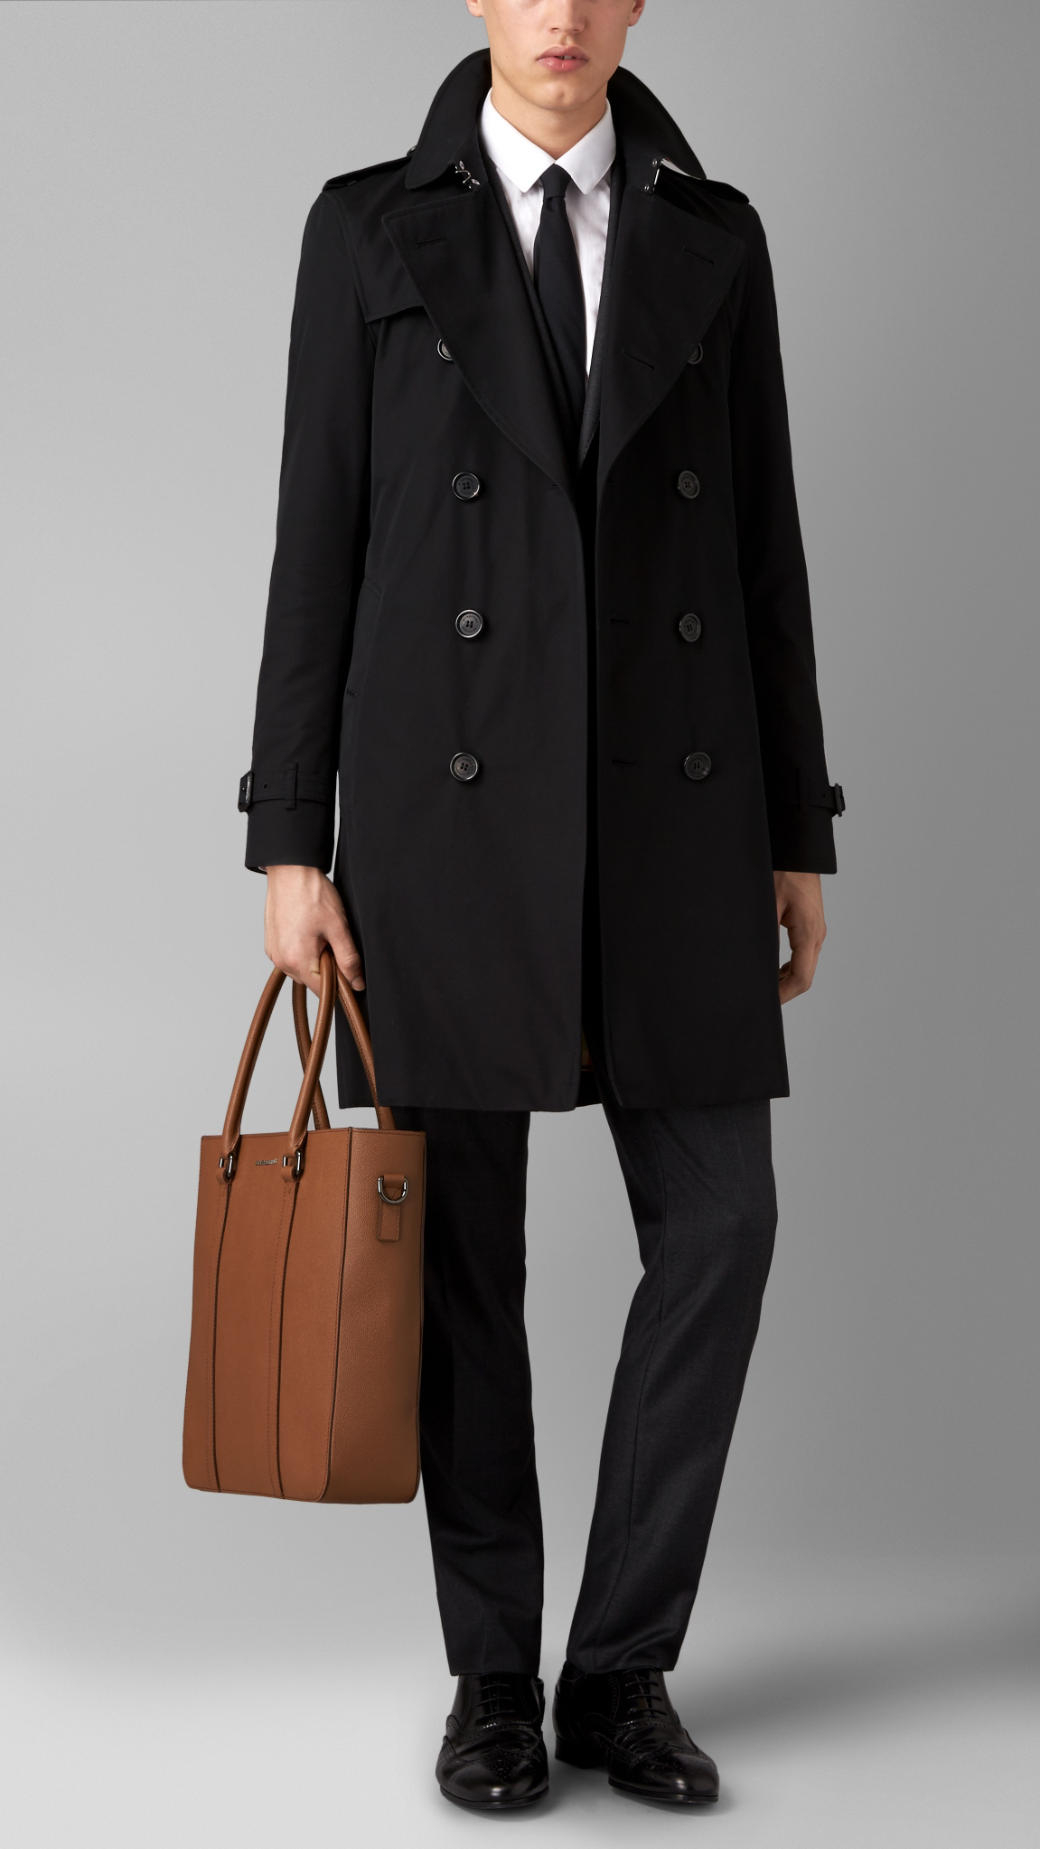 Tote bag burberry - Gallery